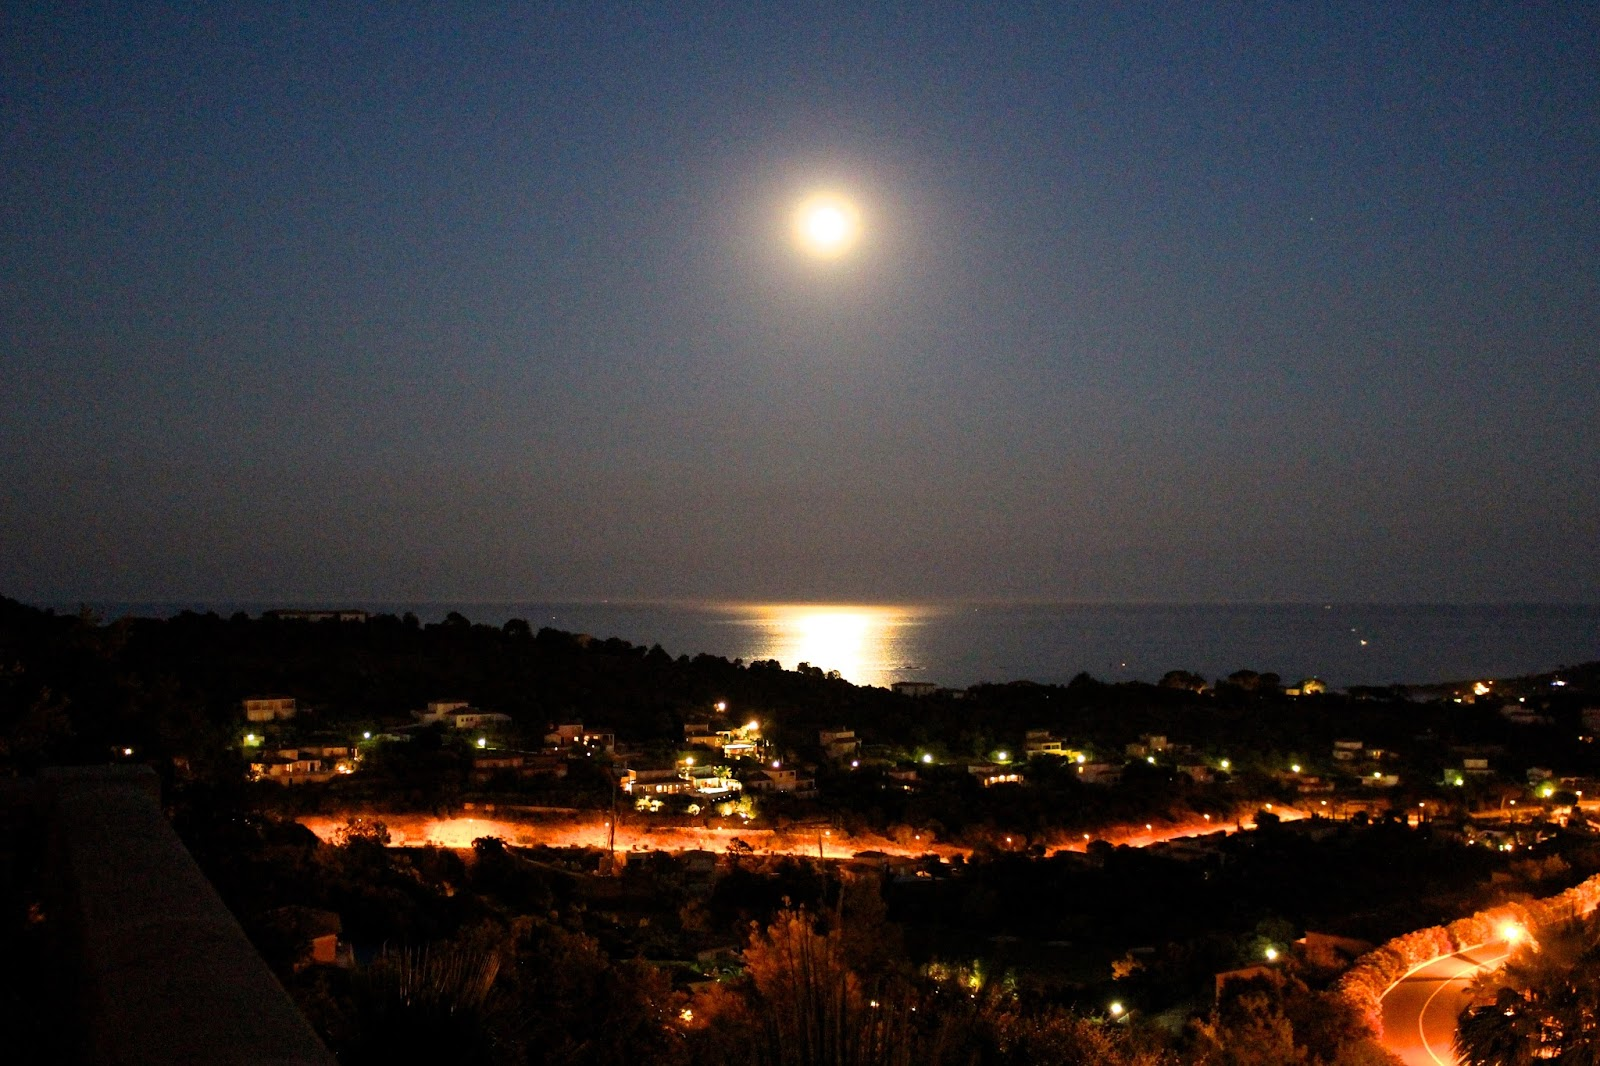 South of France Sainte-Maxime nighttime photography